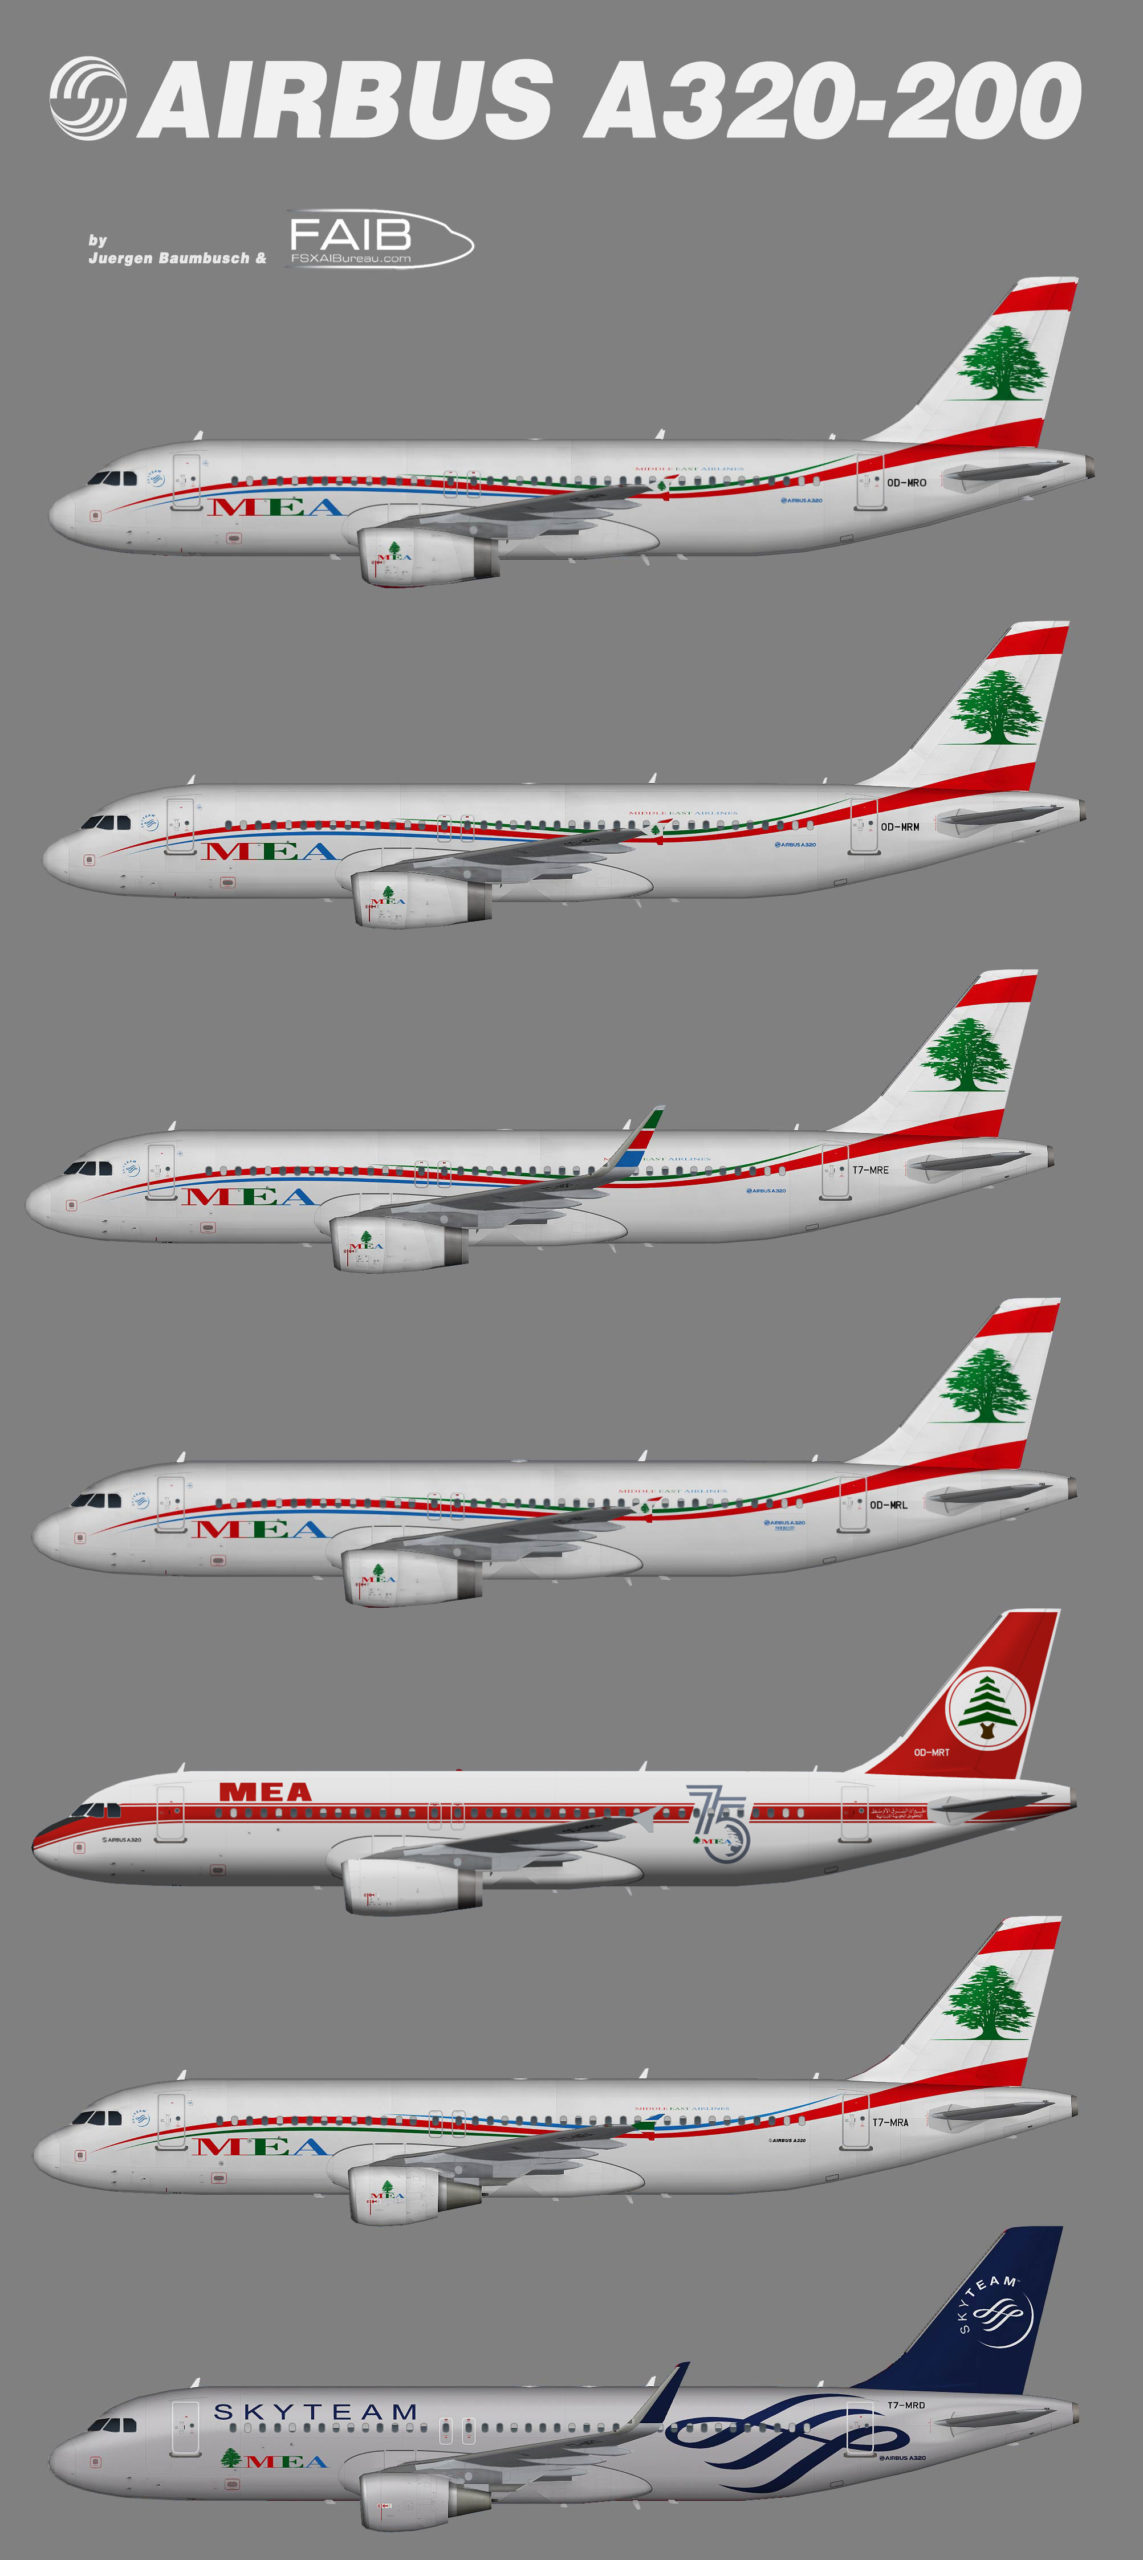 Middle East Airlines (MEA) Airbus A320-200 (representative fleet)